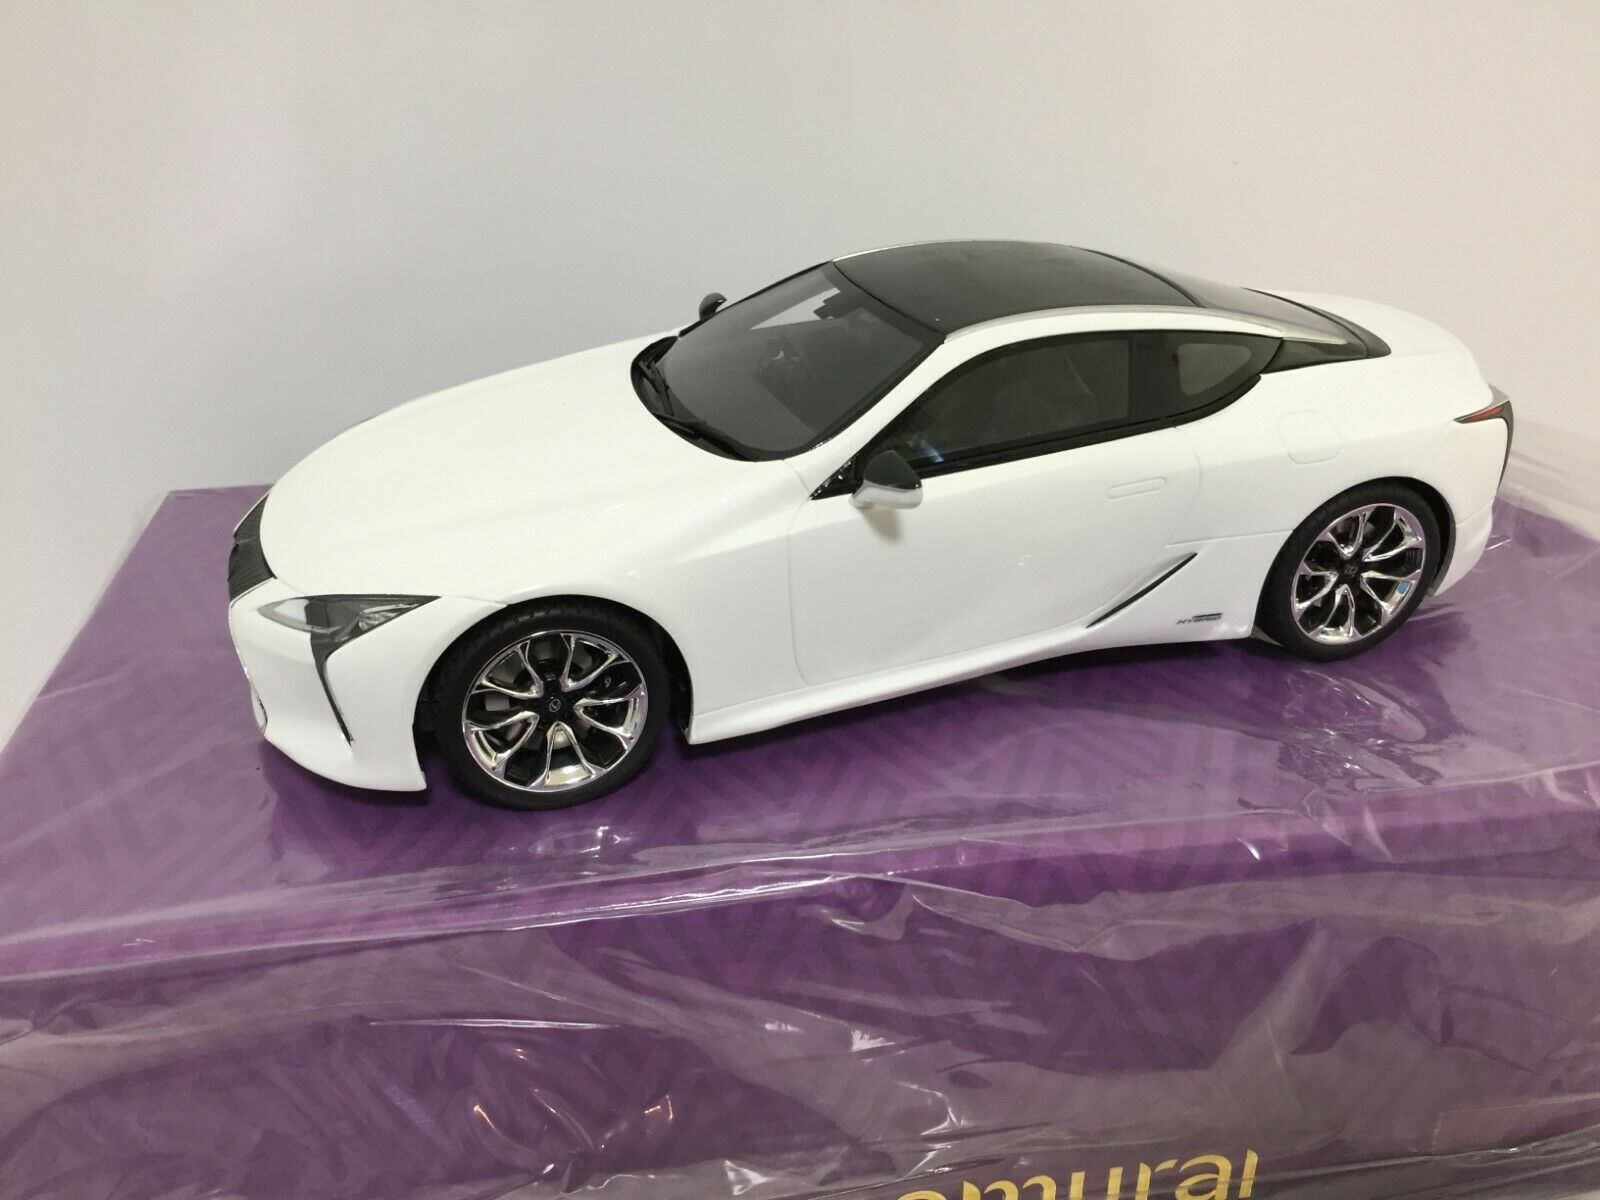 NEW Kyosho Die Cast Car SAMURAI LEXUS LC500h White Scale Scale Scale 1 18  from JAPAN F S 94dbe0